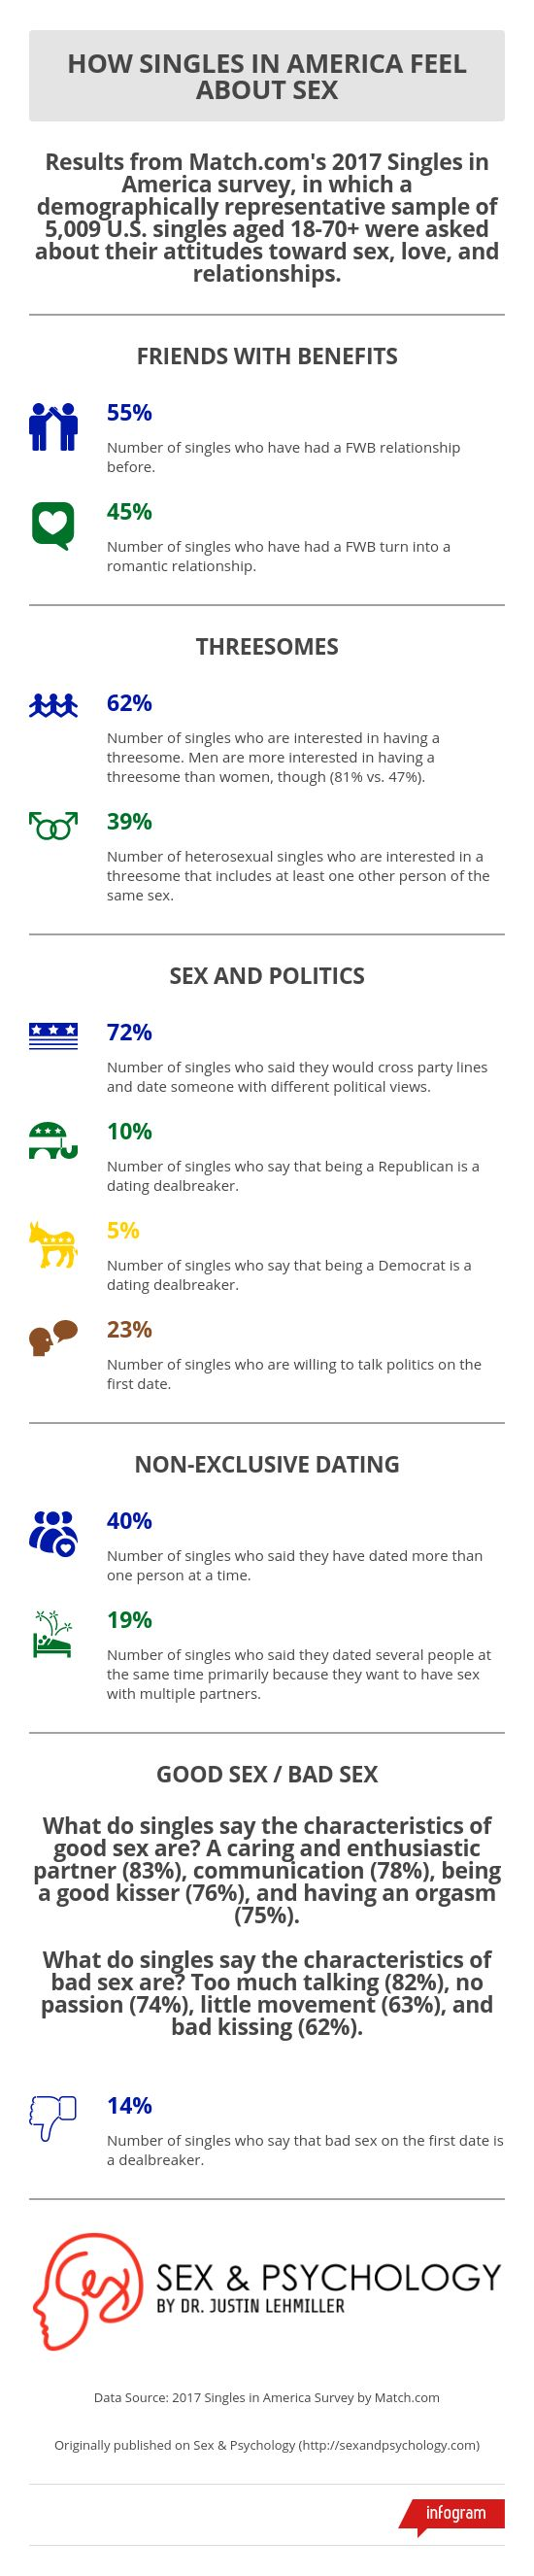 infographic-singles-attitudes-toward-sex.jpg